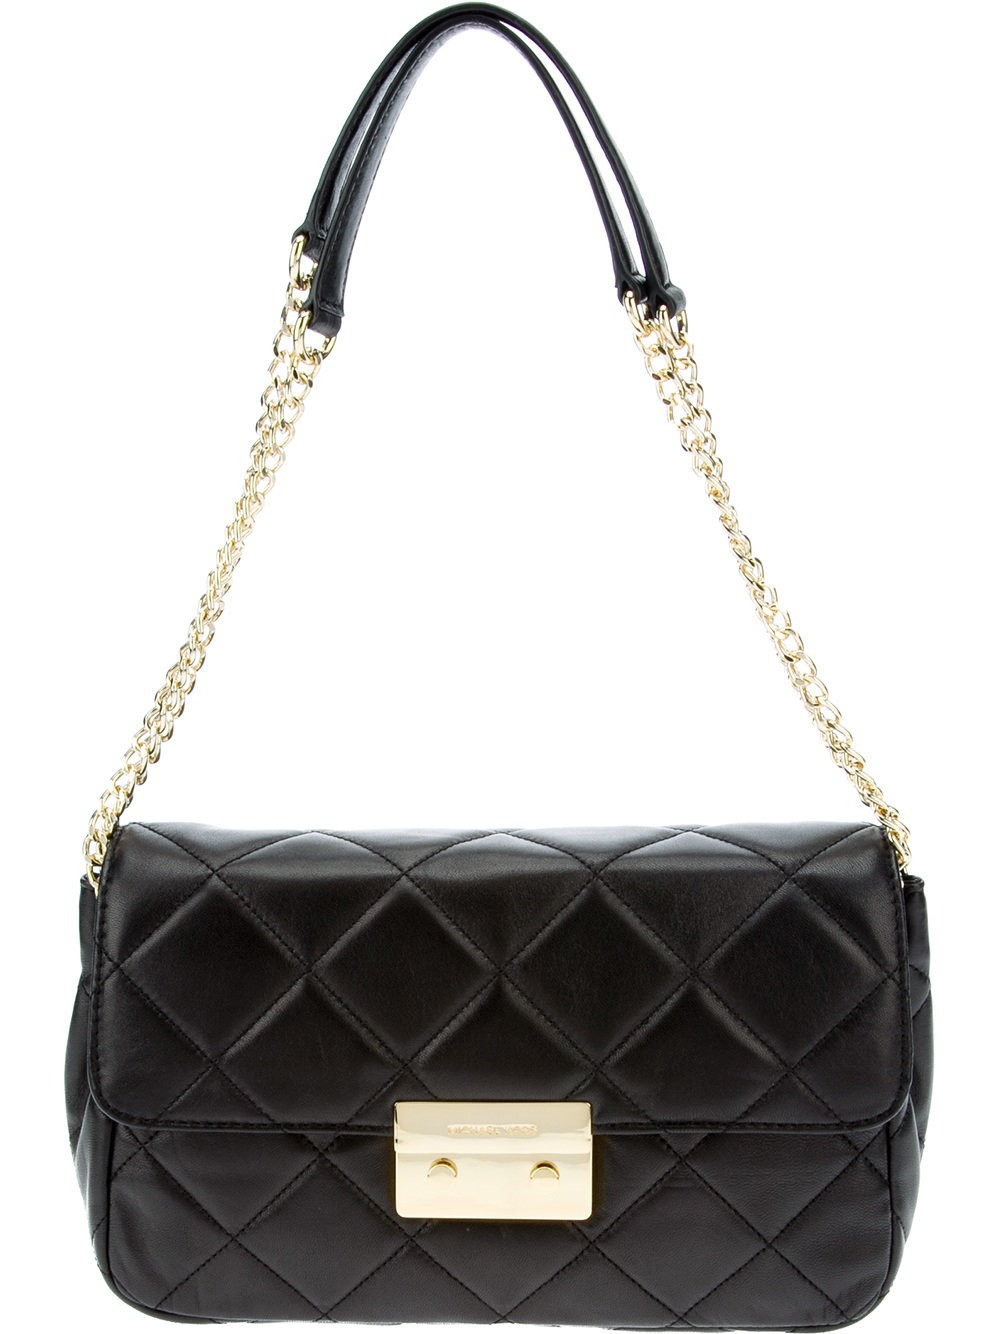 Gallery Previously Sold At Farfetch Women S Michael Kors Quilted Bag